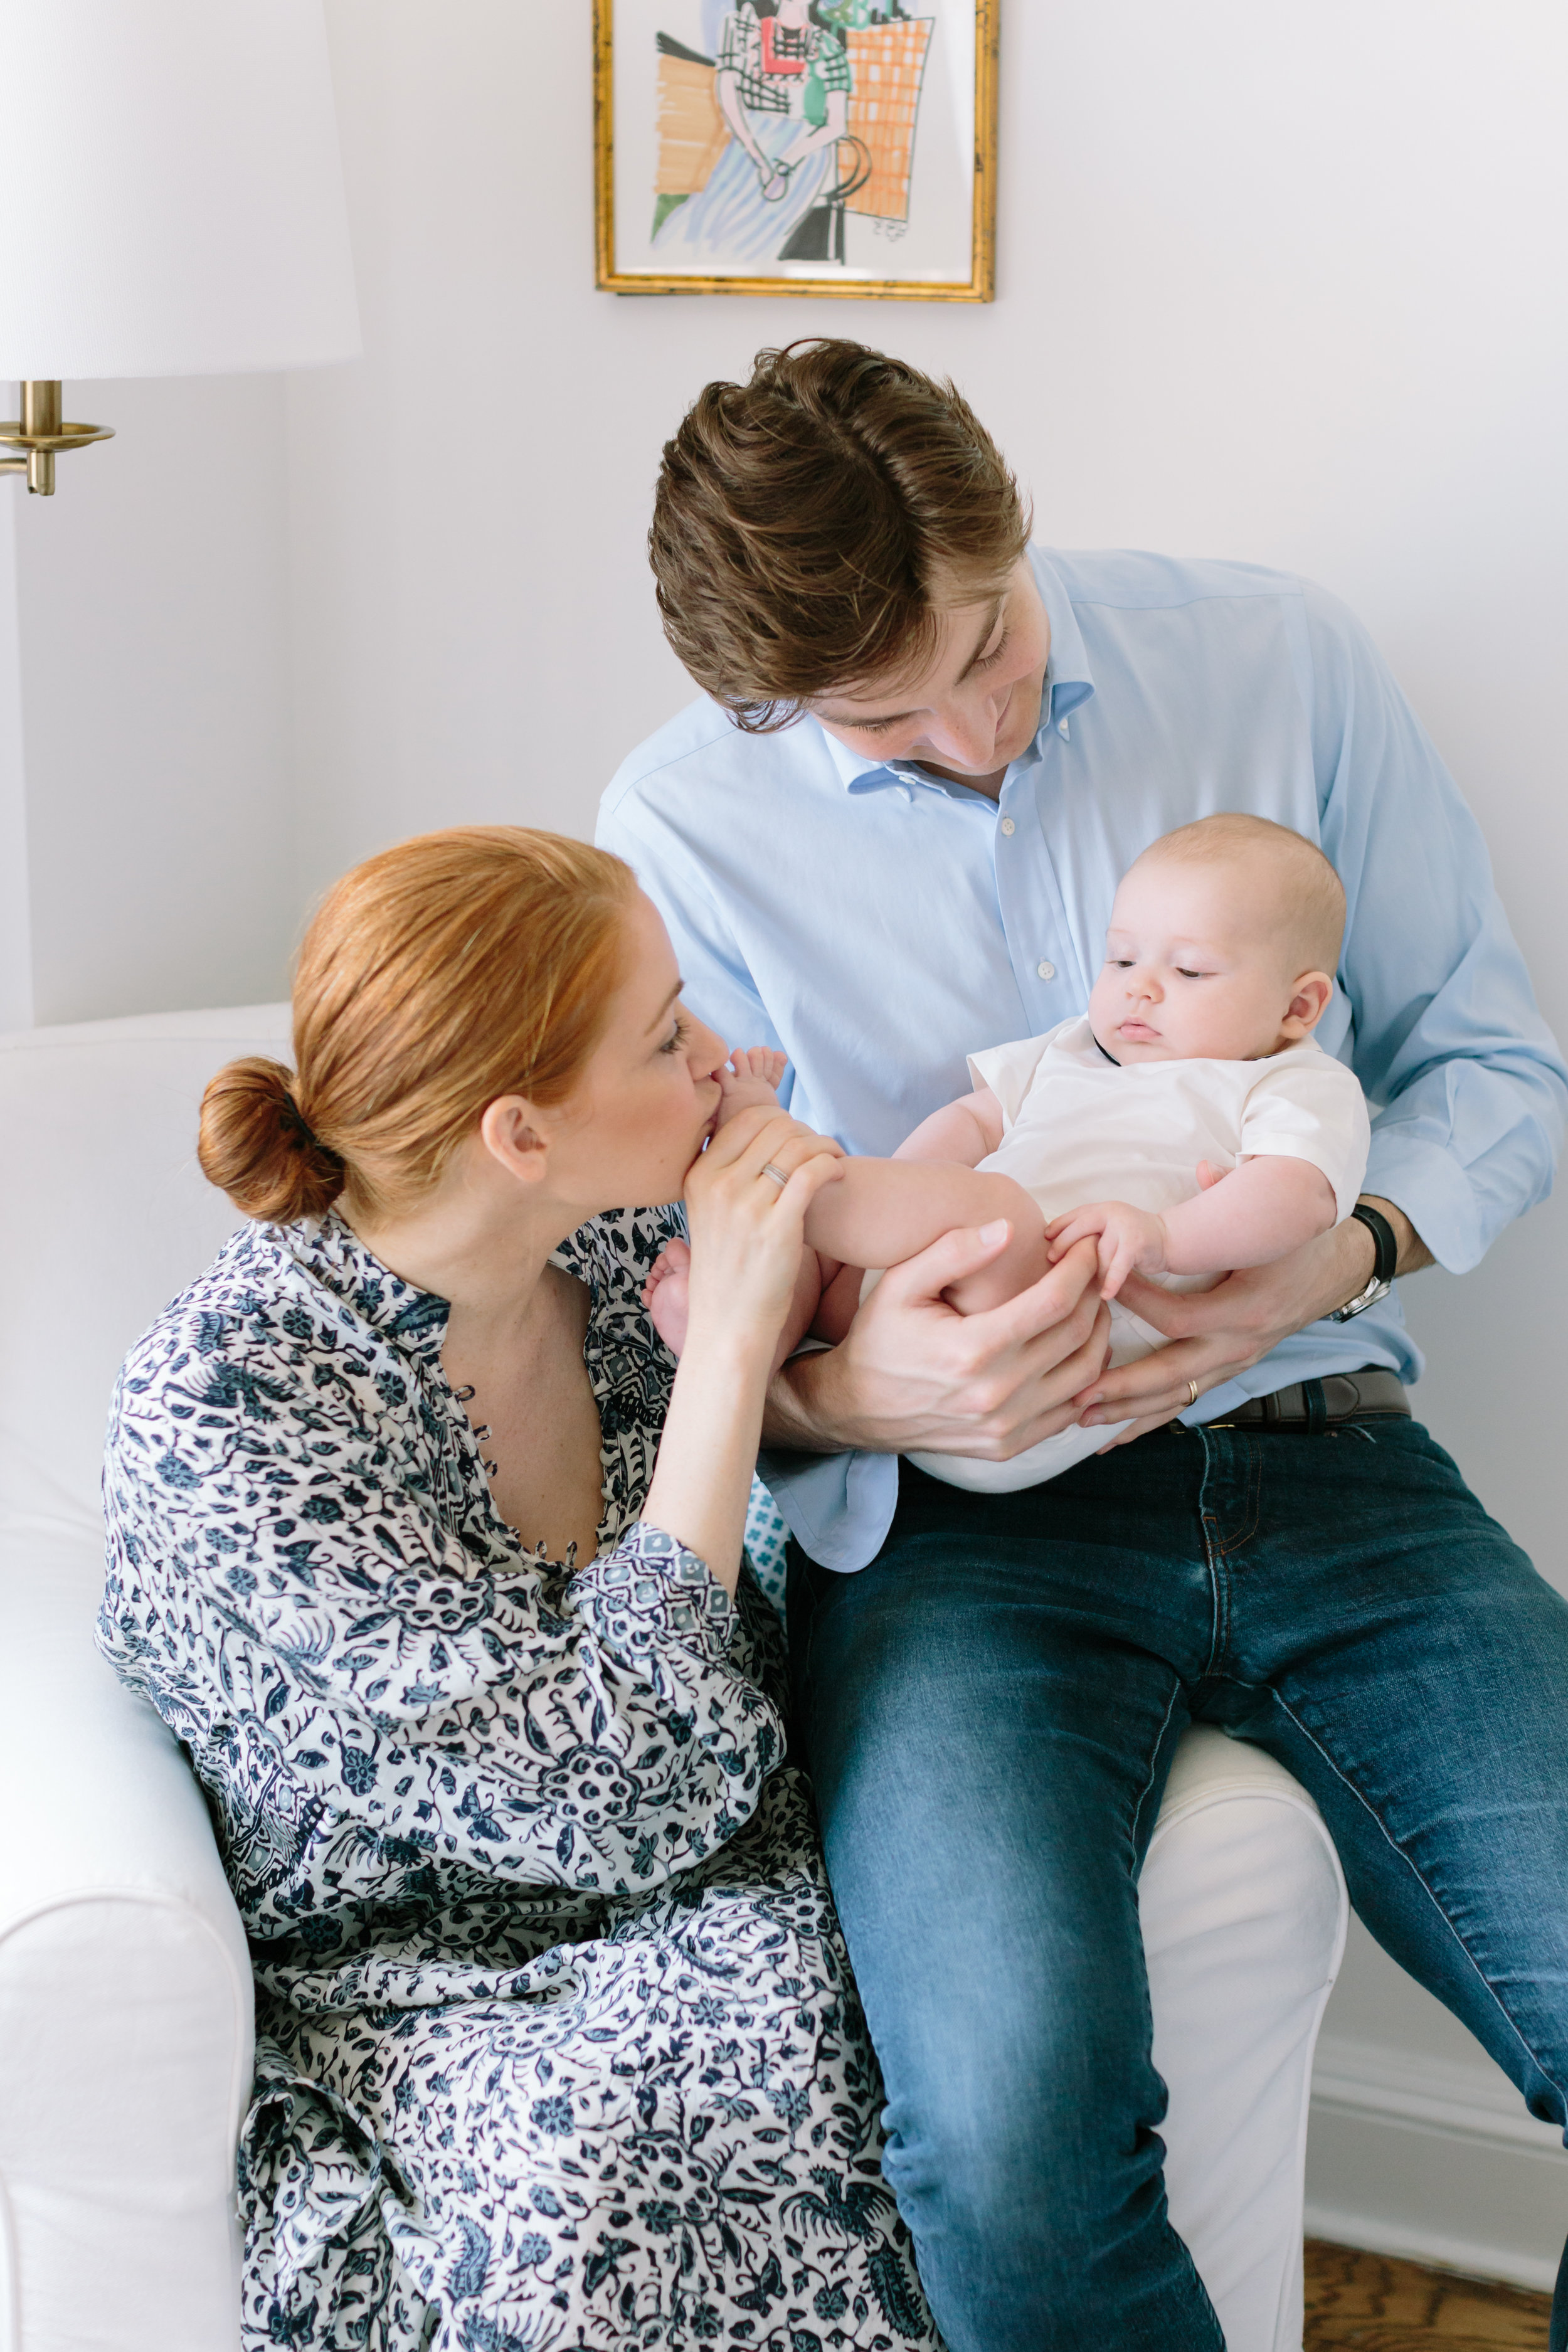 Newborn Photography in Upper East Side by top NYC family photographer, Jacqueline Clair Photography